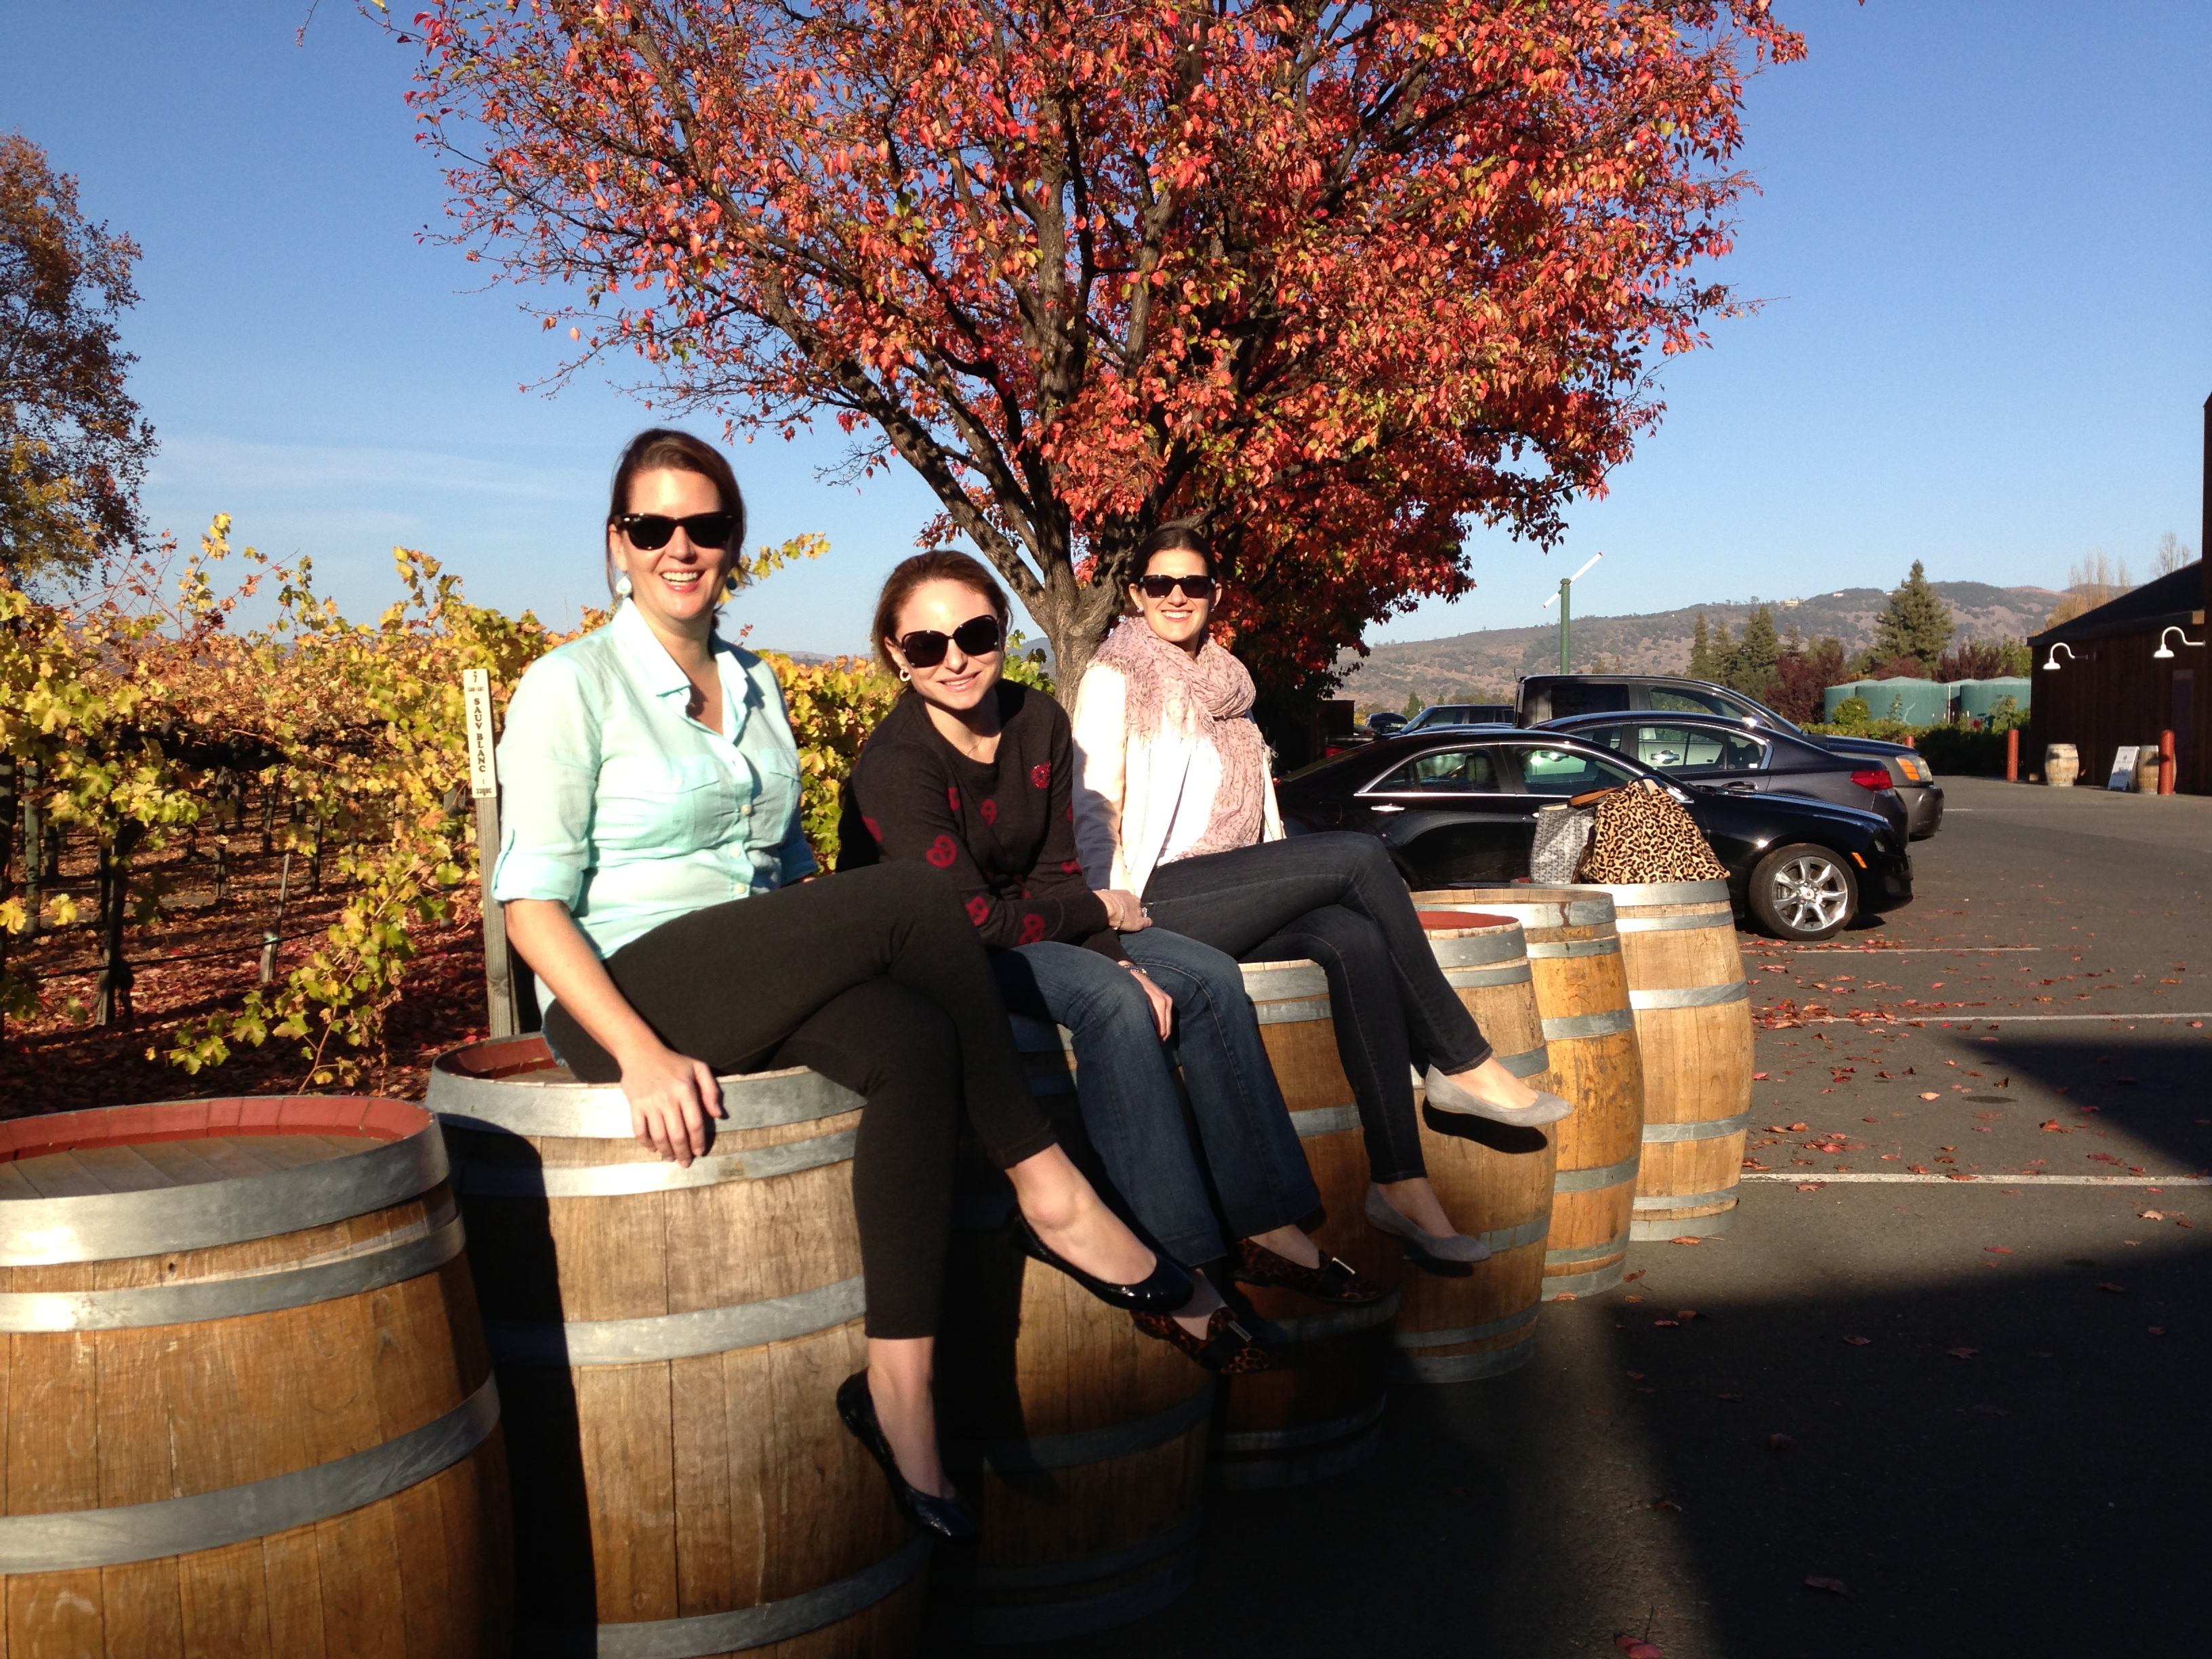 Robert Sinskey Winery A Must See On California's Silverado Trail